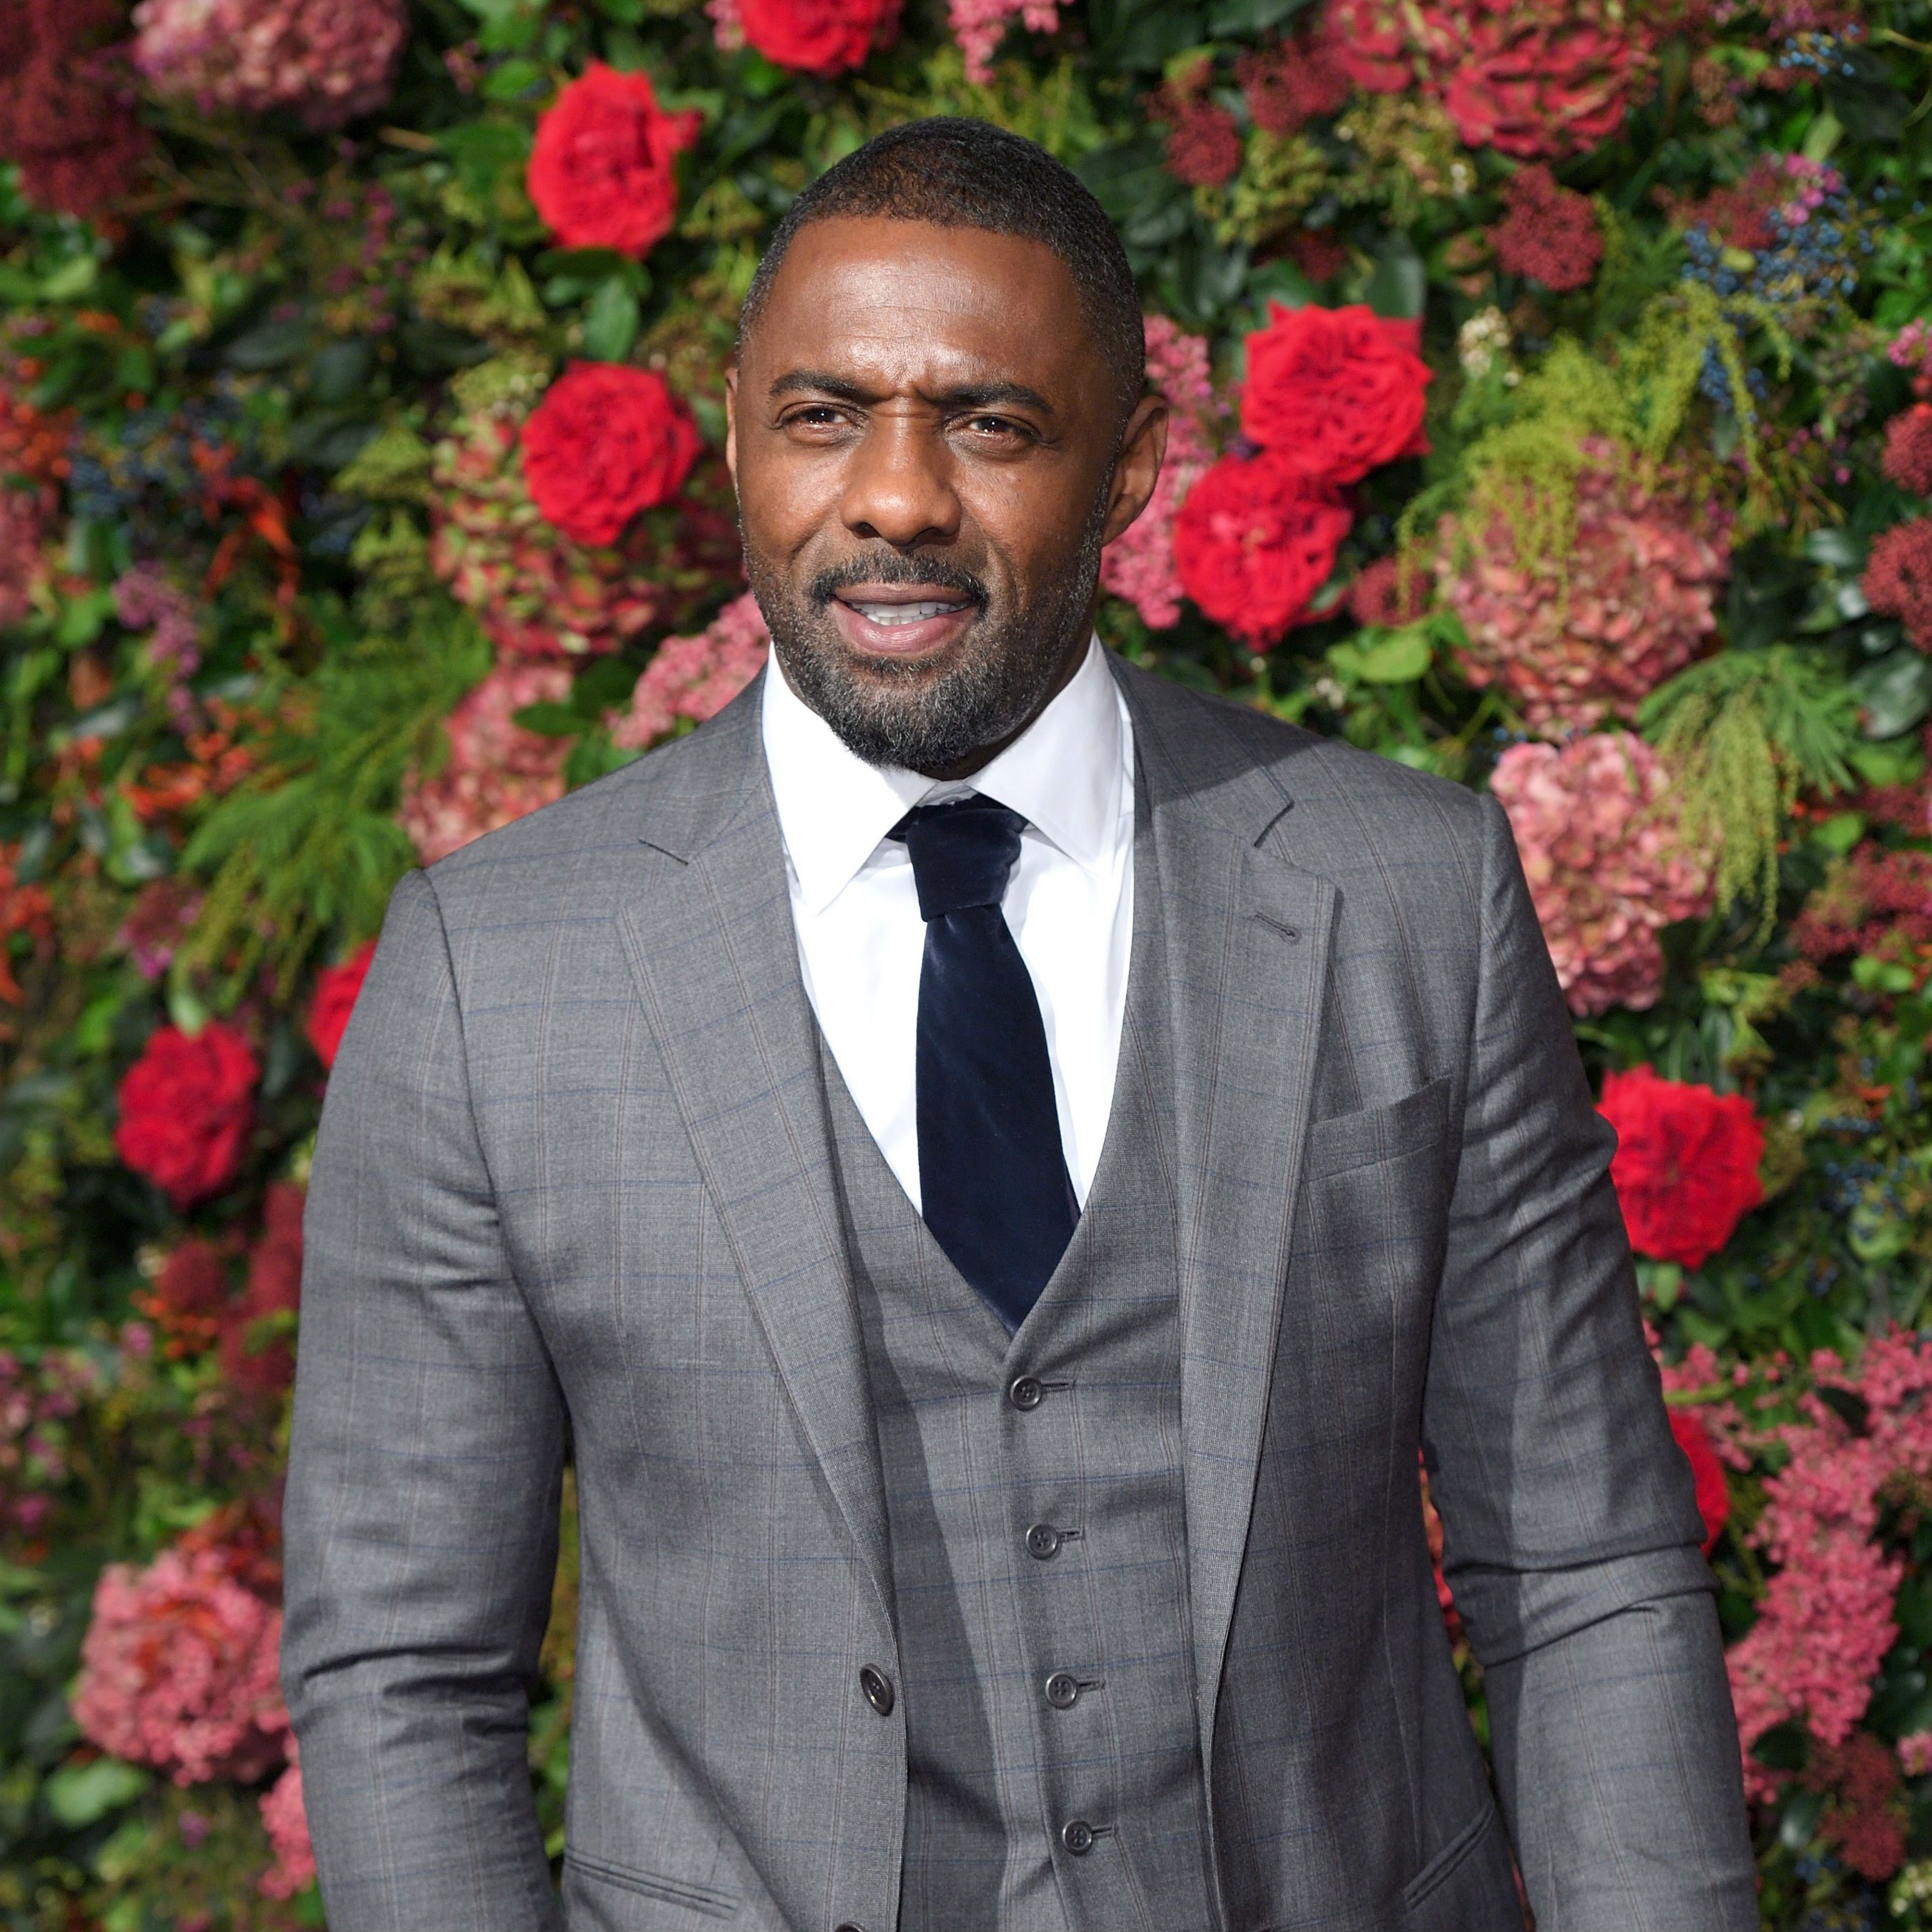 Marvel's Thor star Idris Elba being eyed to star in new comic book movie